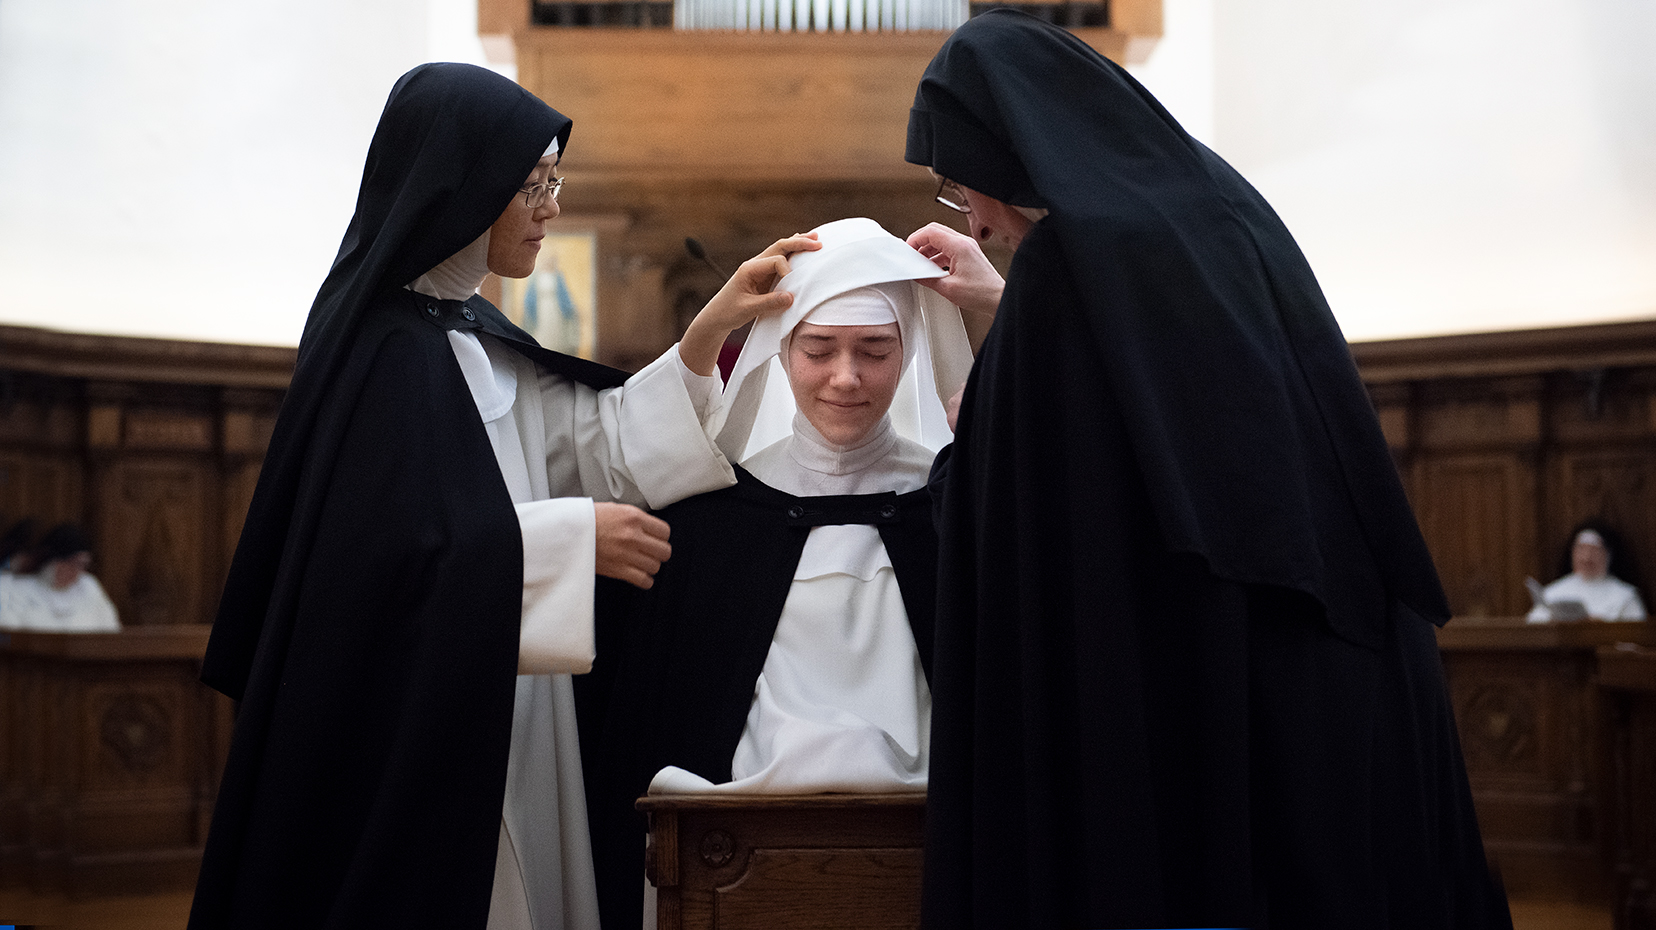 DOMINICAN NUNS FIRST PROFESSION